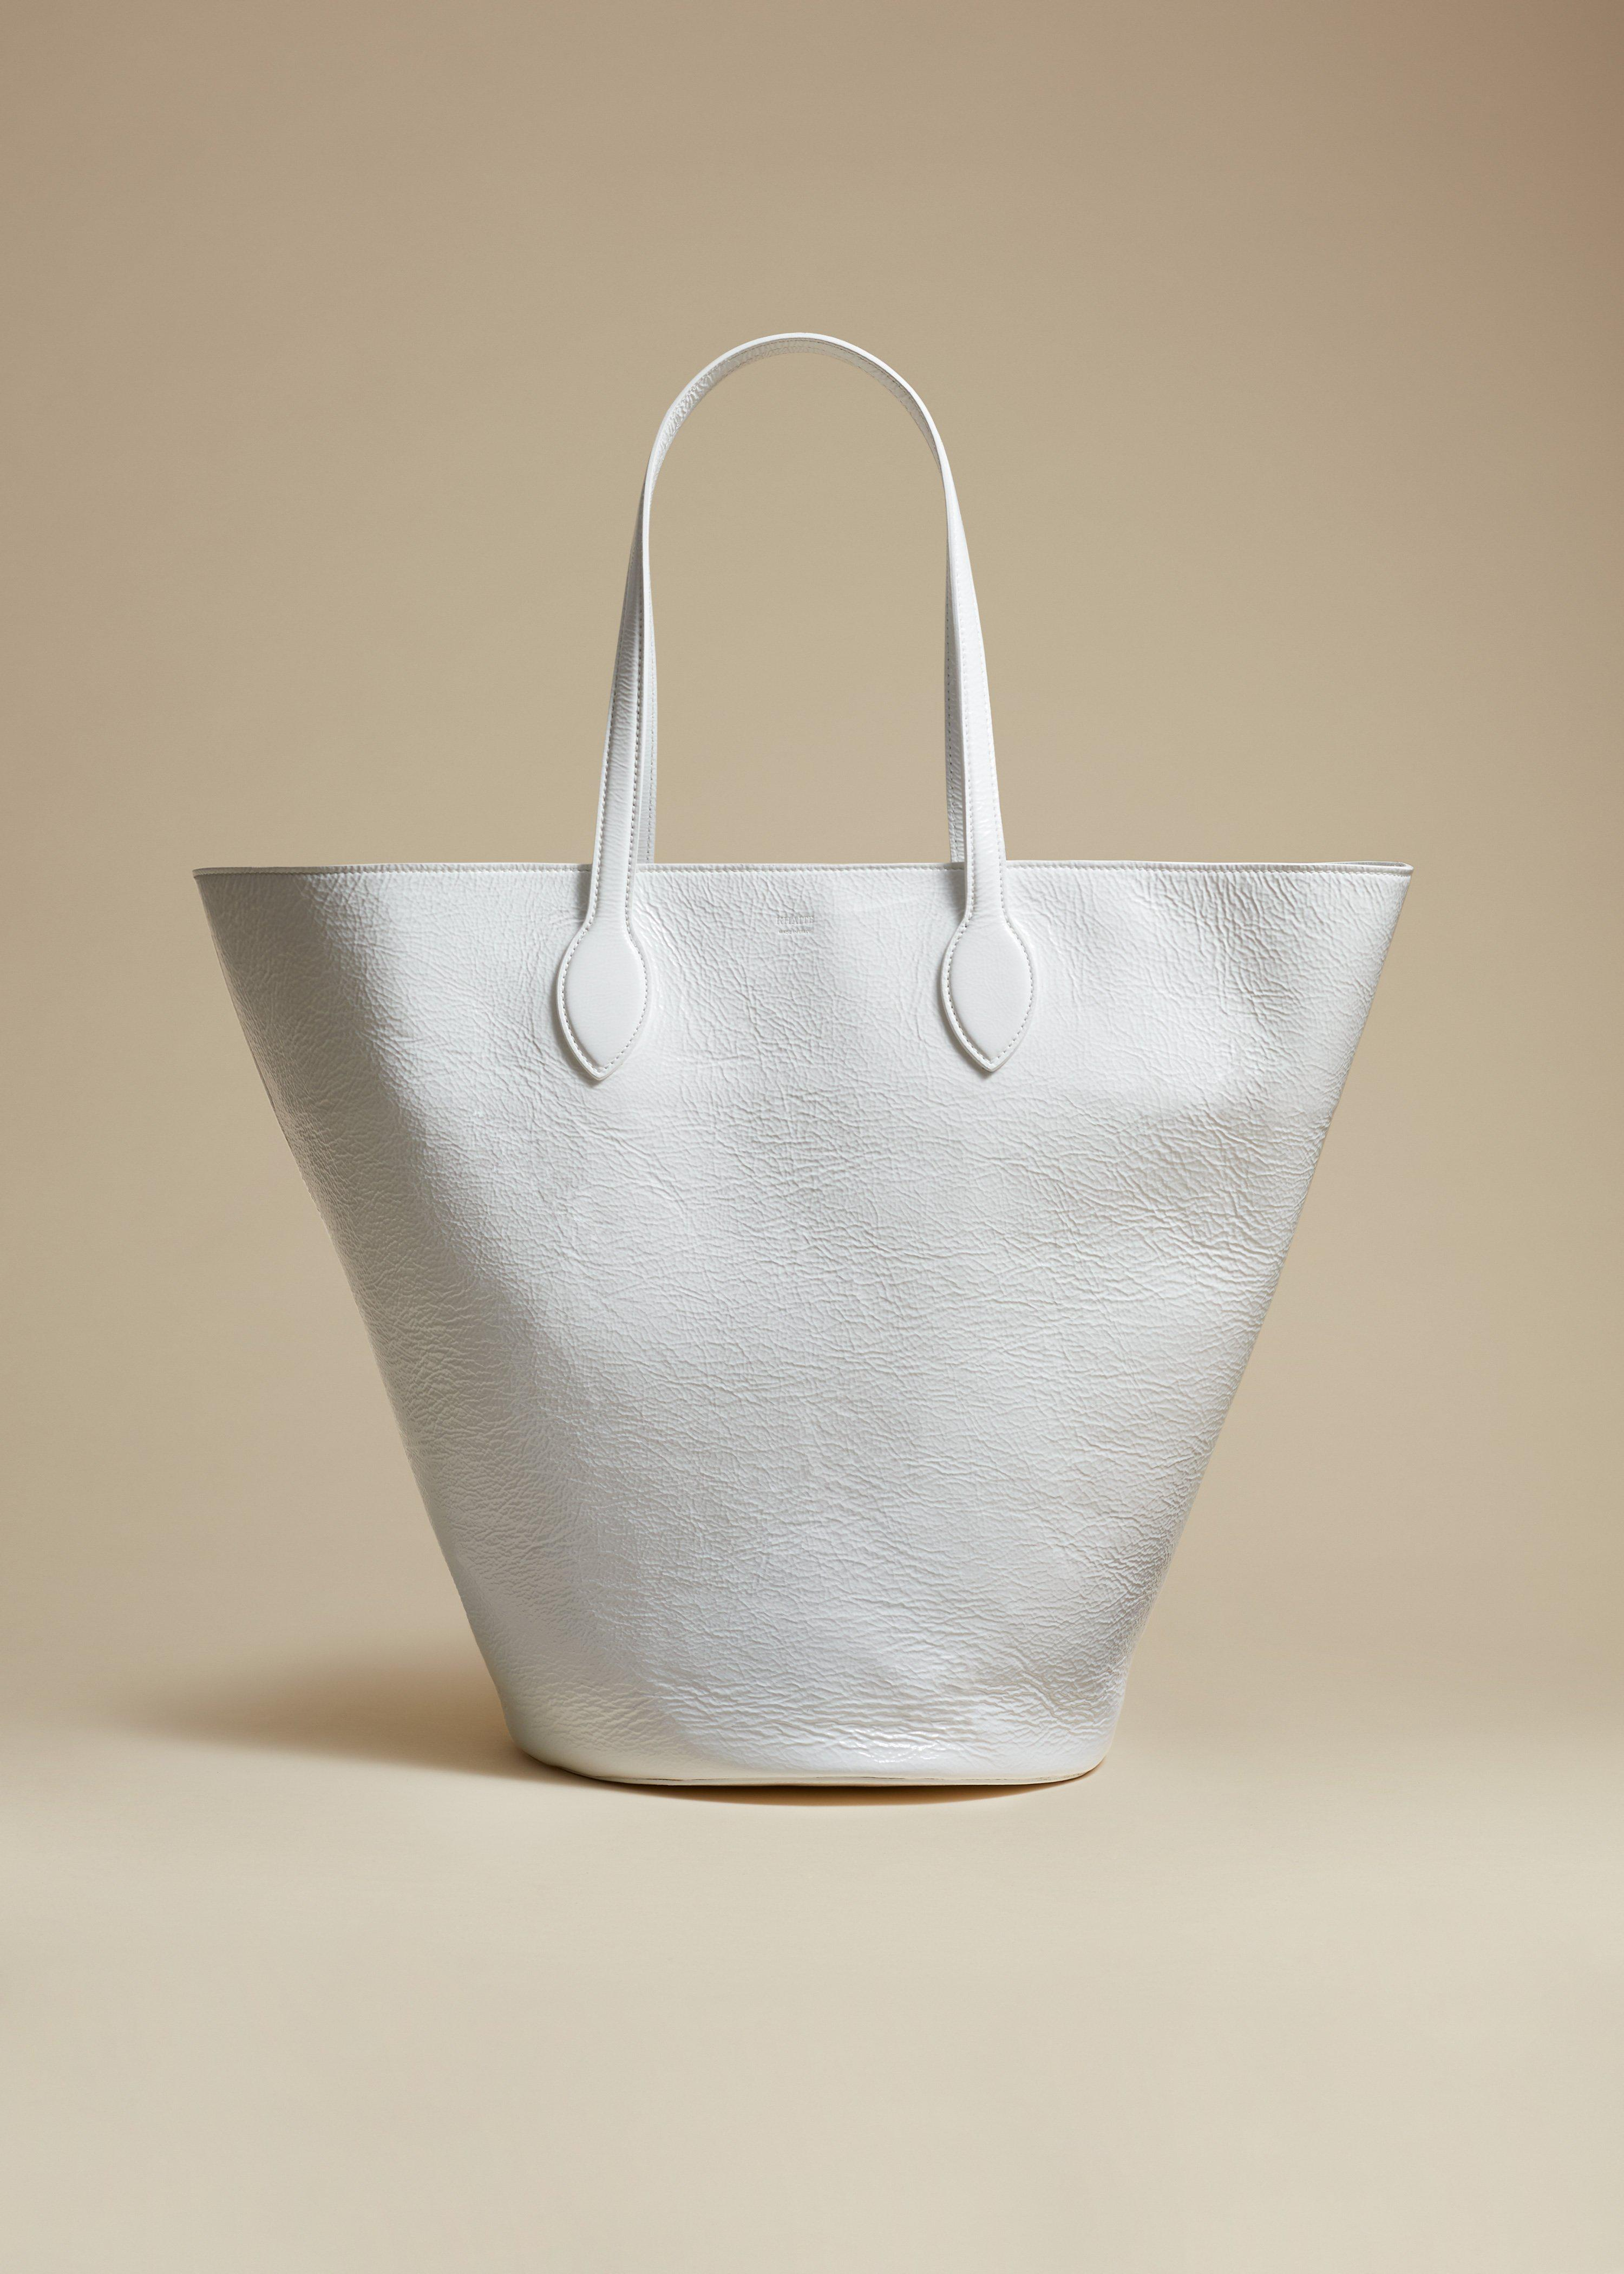 The Medium Osa Tote in White Patent Leather